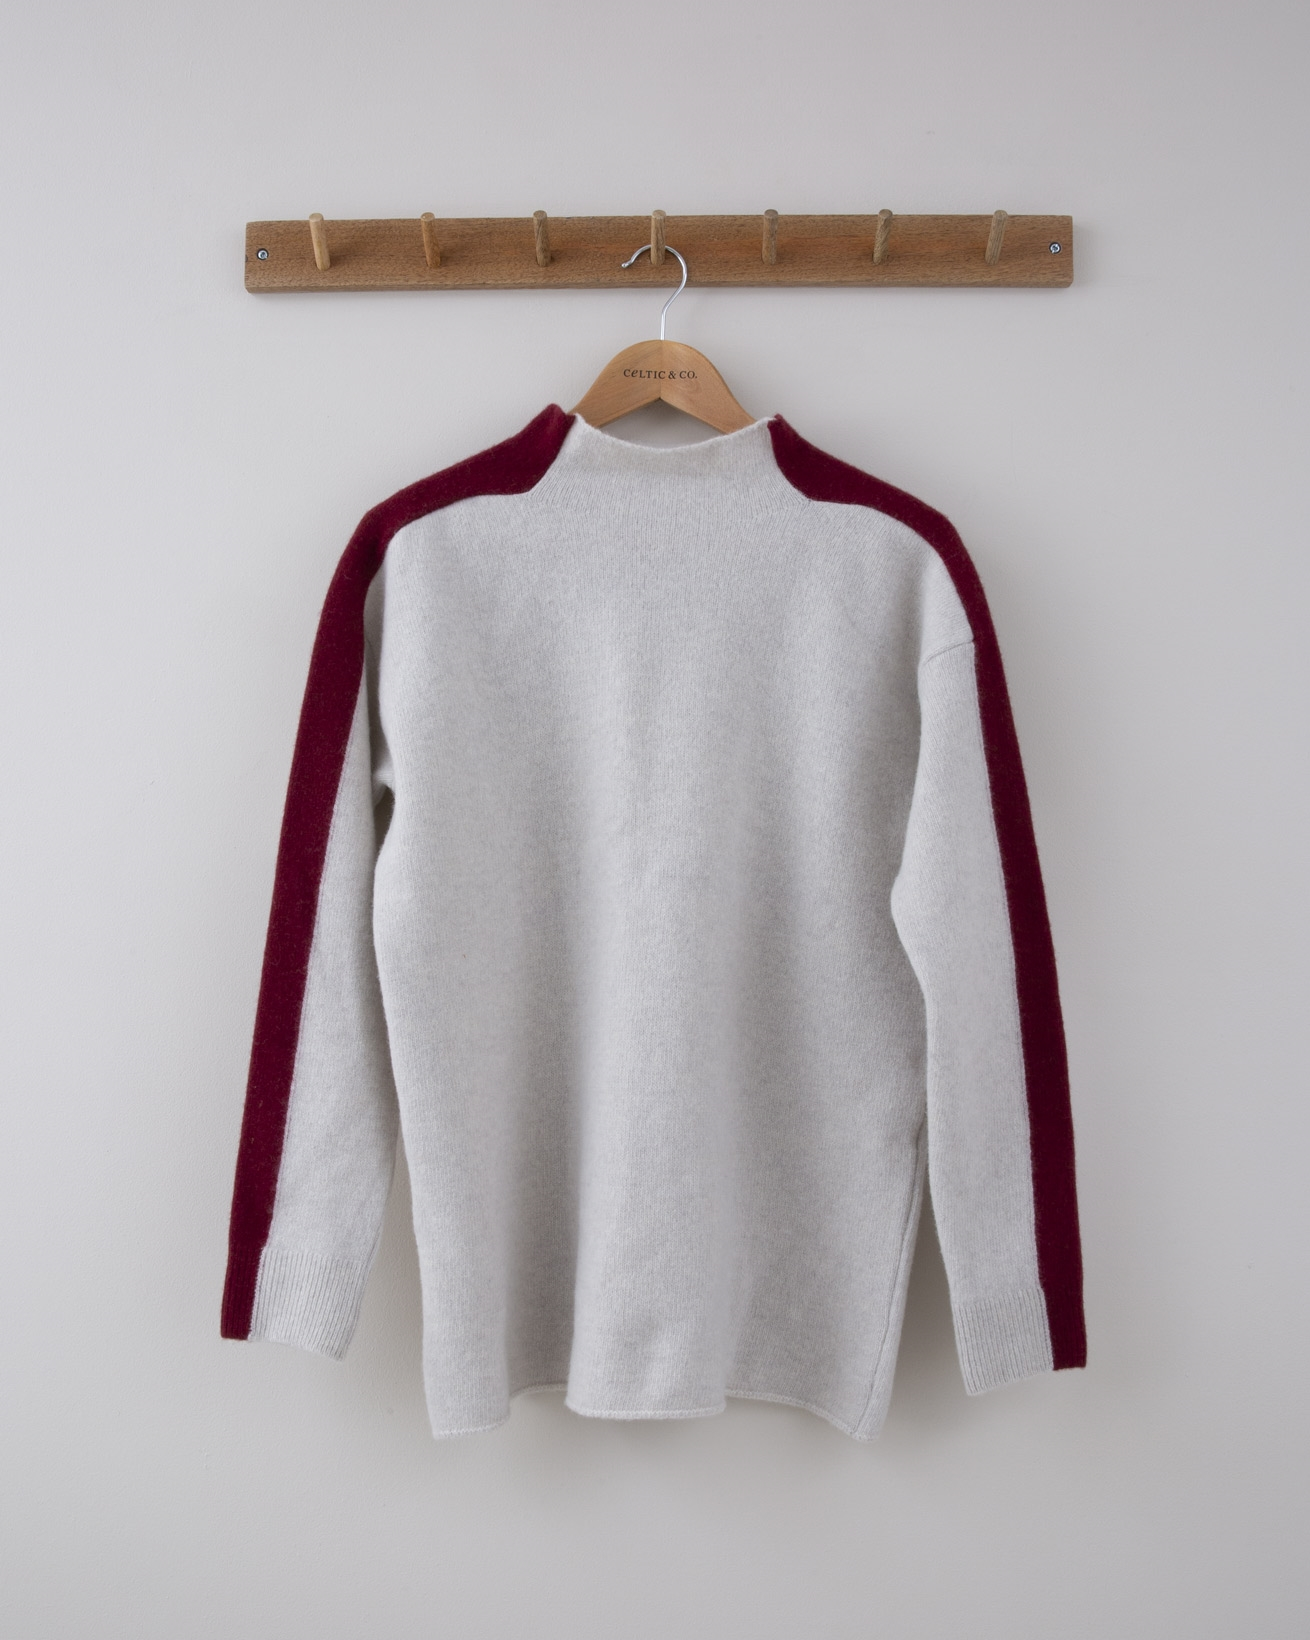 Felted Funnel Neck - Small - Fossil w/claret sleeve stripe - 1281